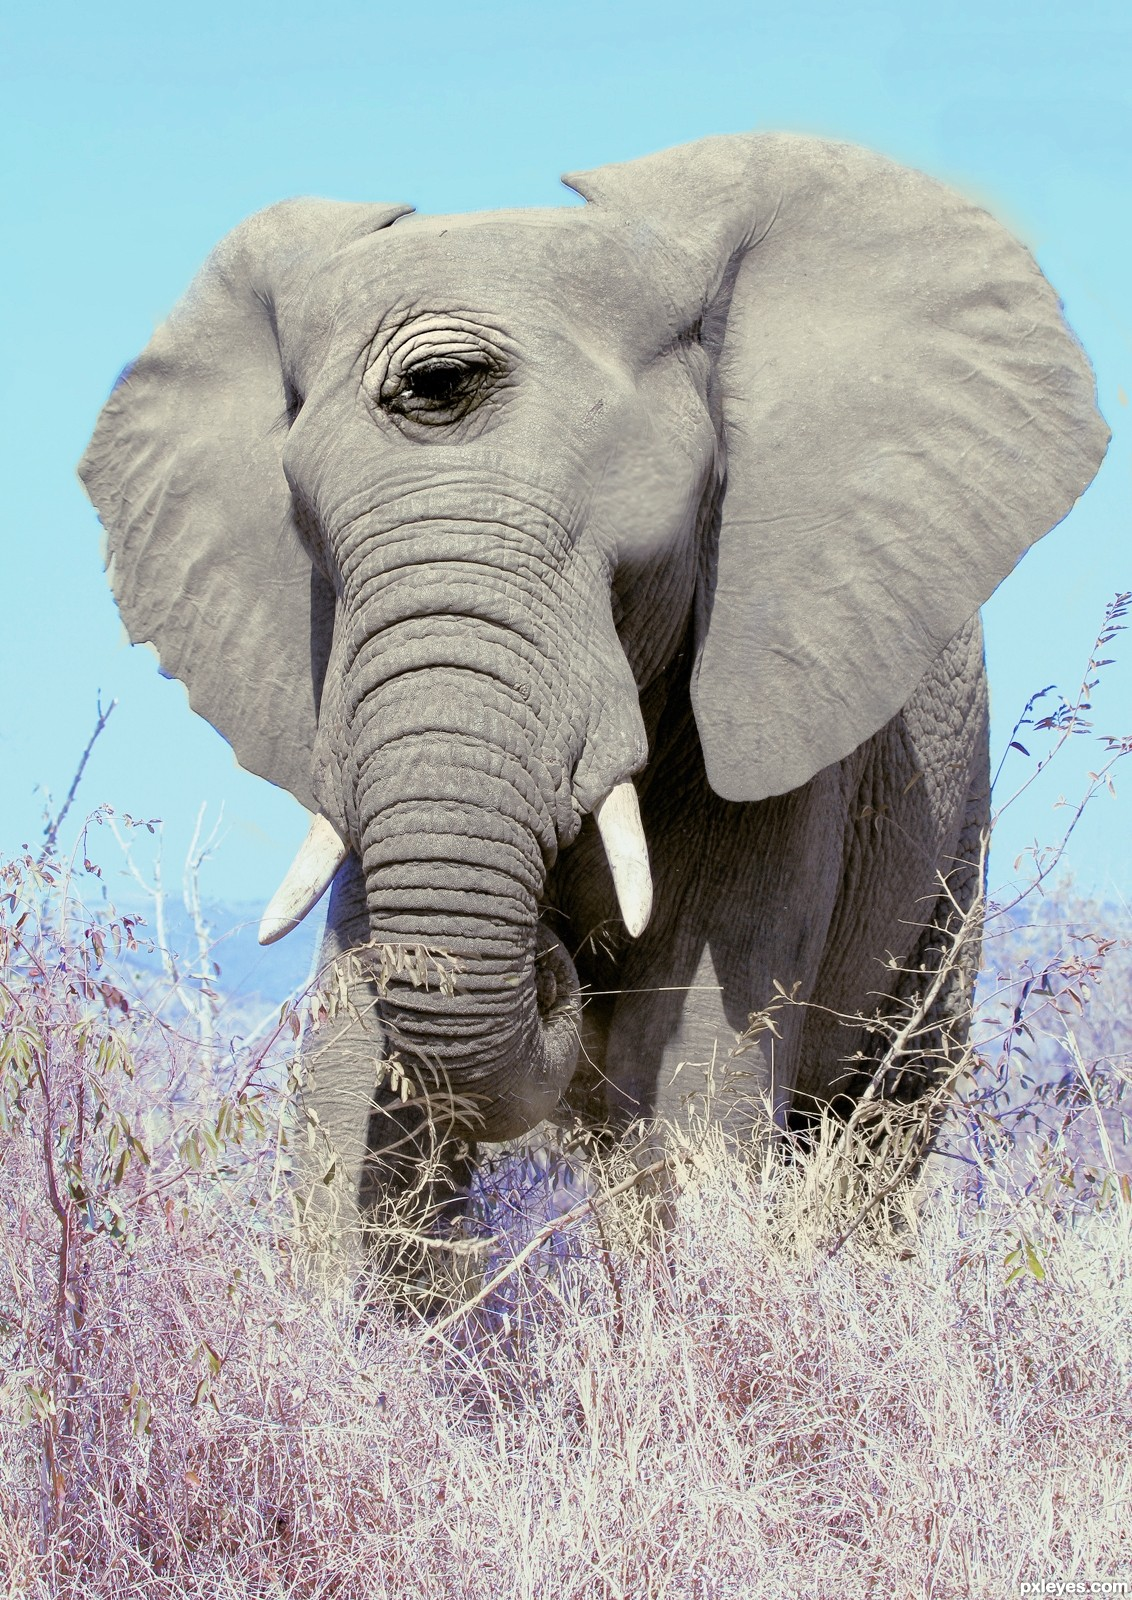 Elephant contest pictures made with photoshop image page 3 - Image elephant ...